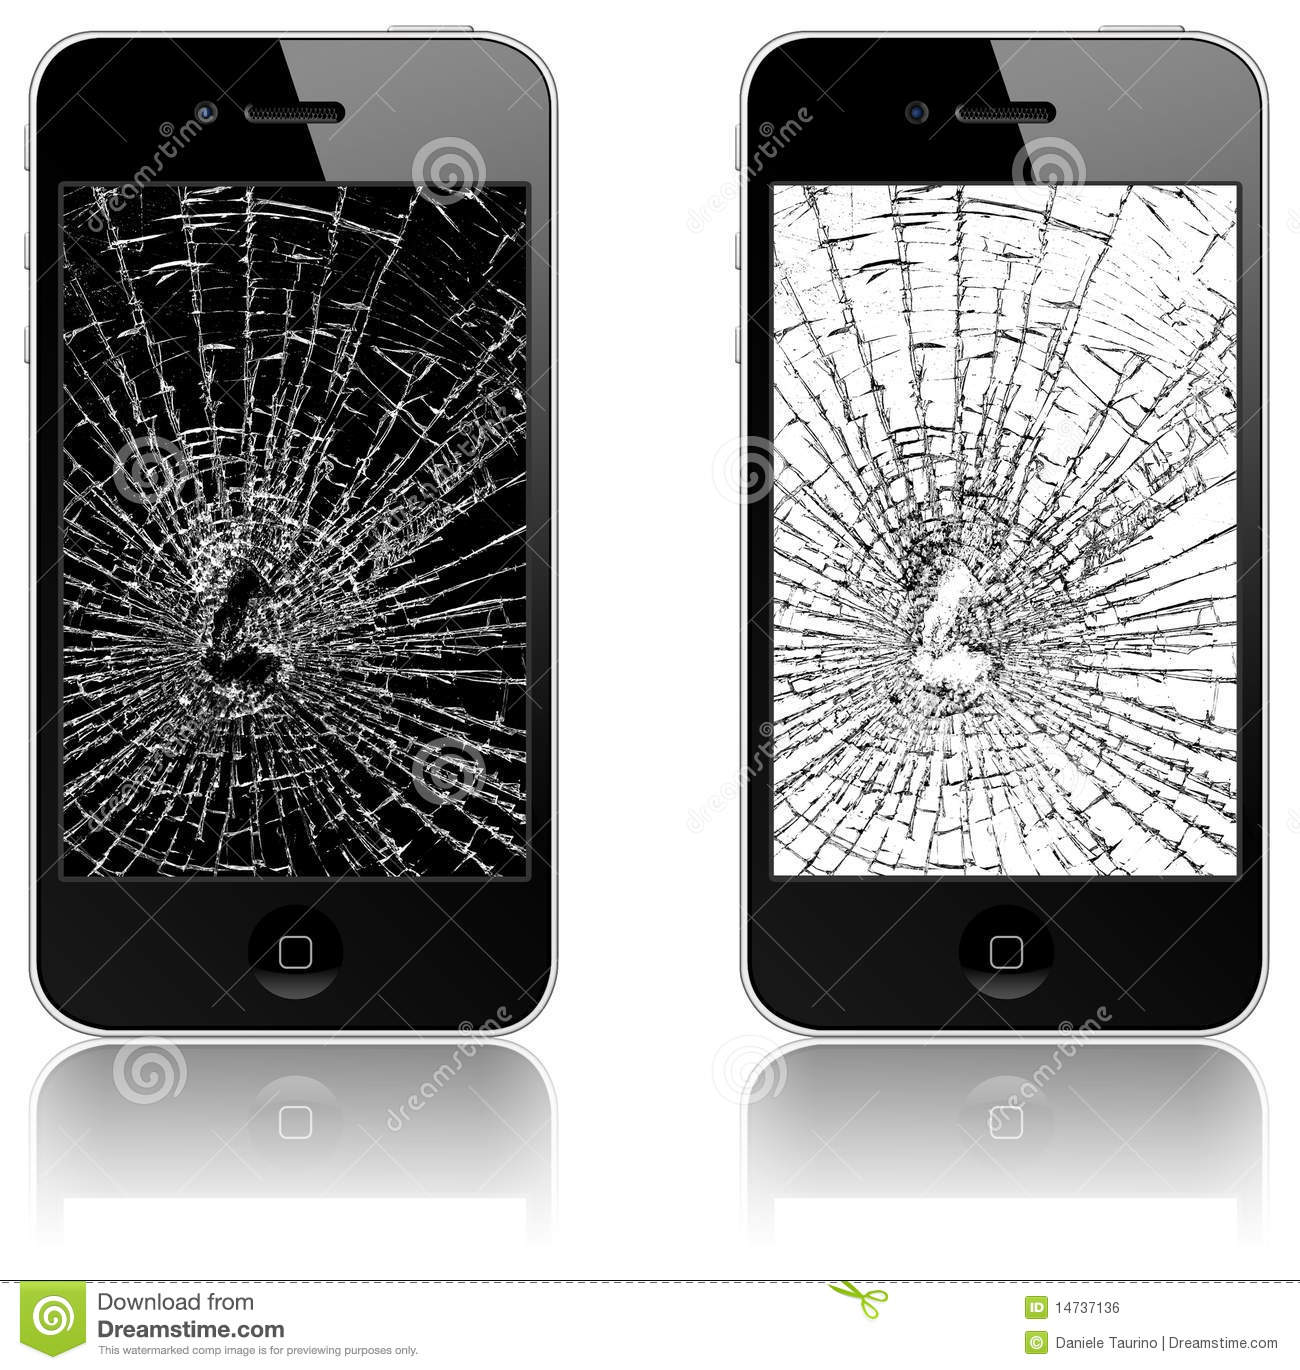 New Apple iPhone 4 broken